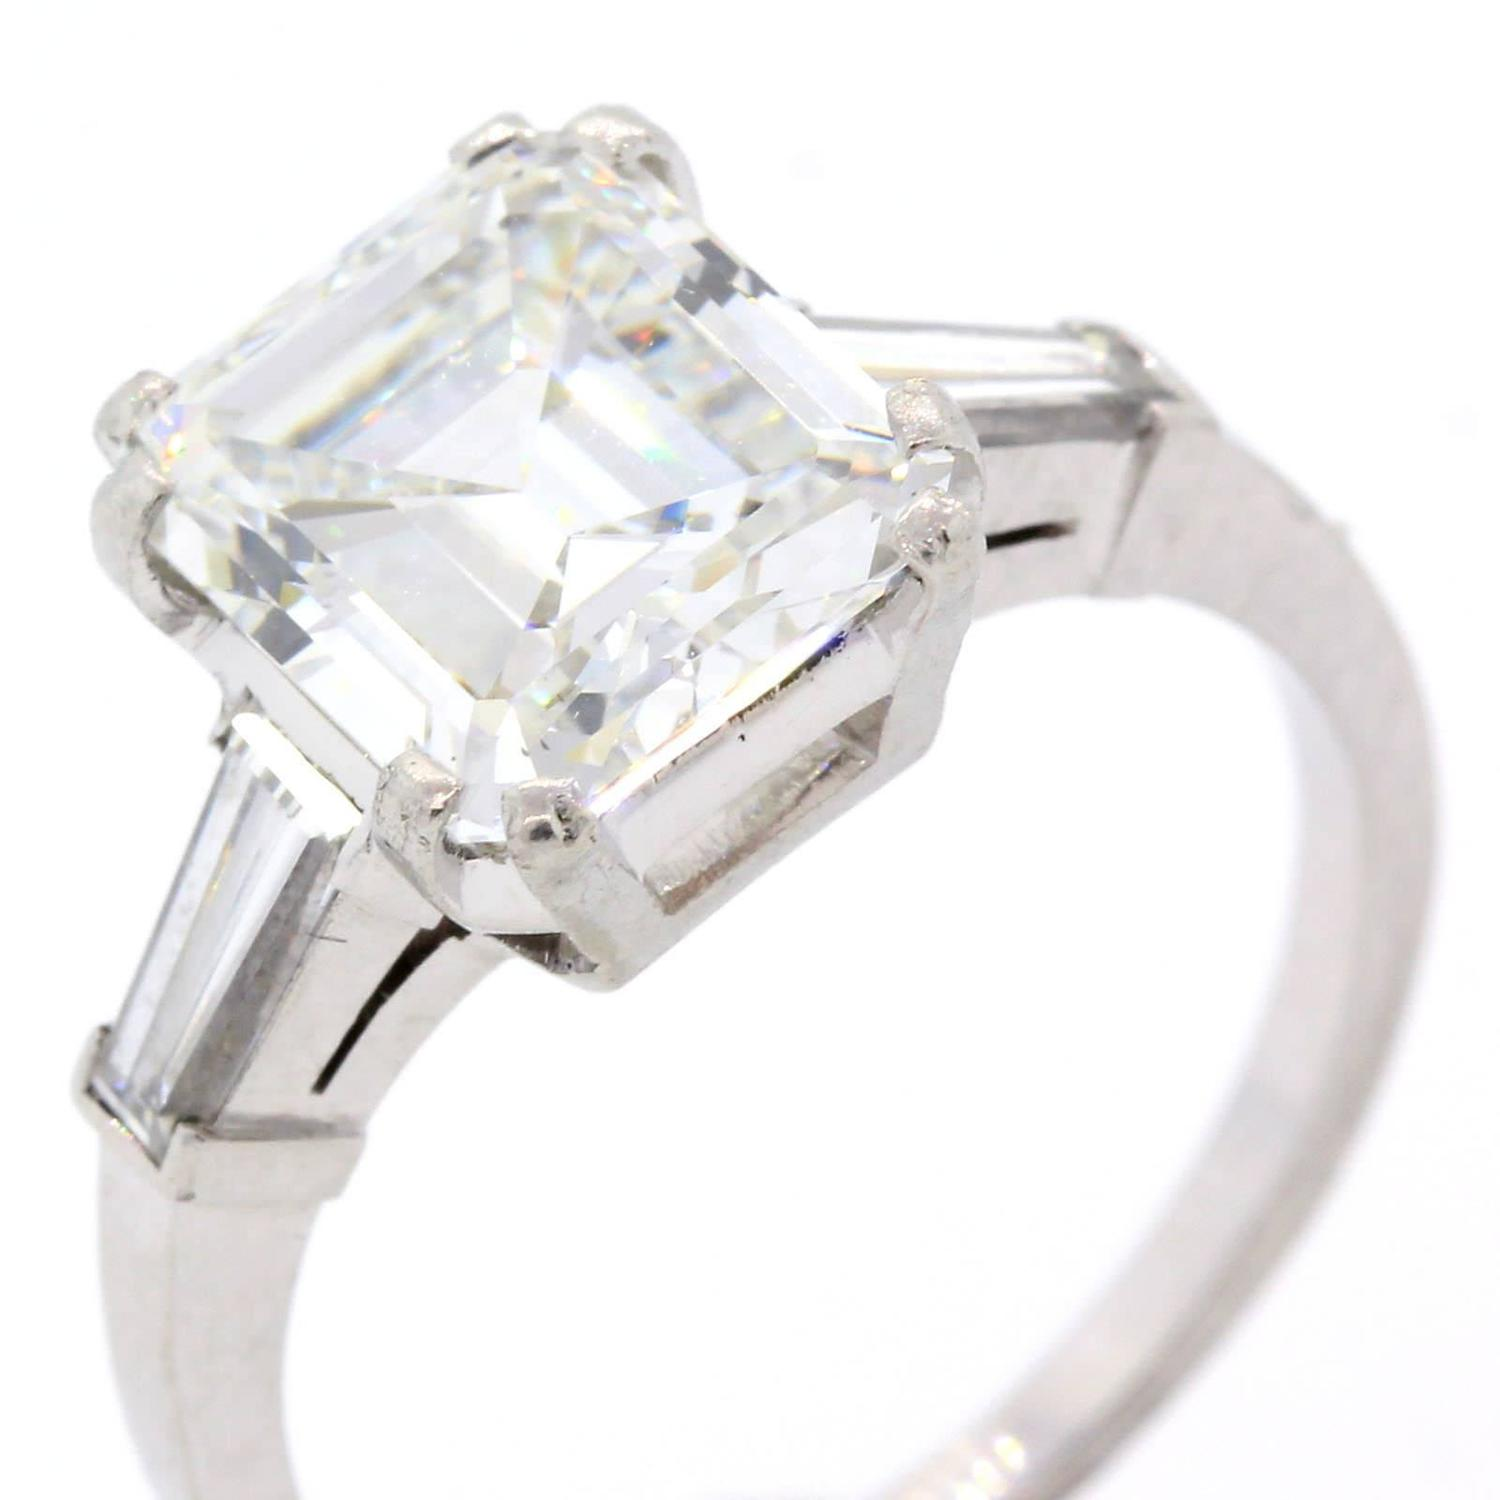 3 21 Carat GIA Cert Emerald Cut Diamond Platinum Engagement Ring at 1stdibs